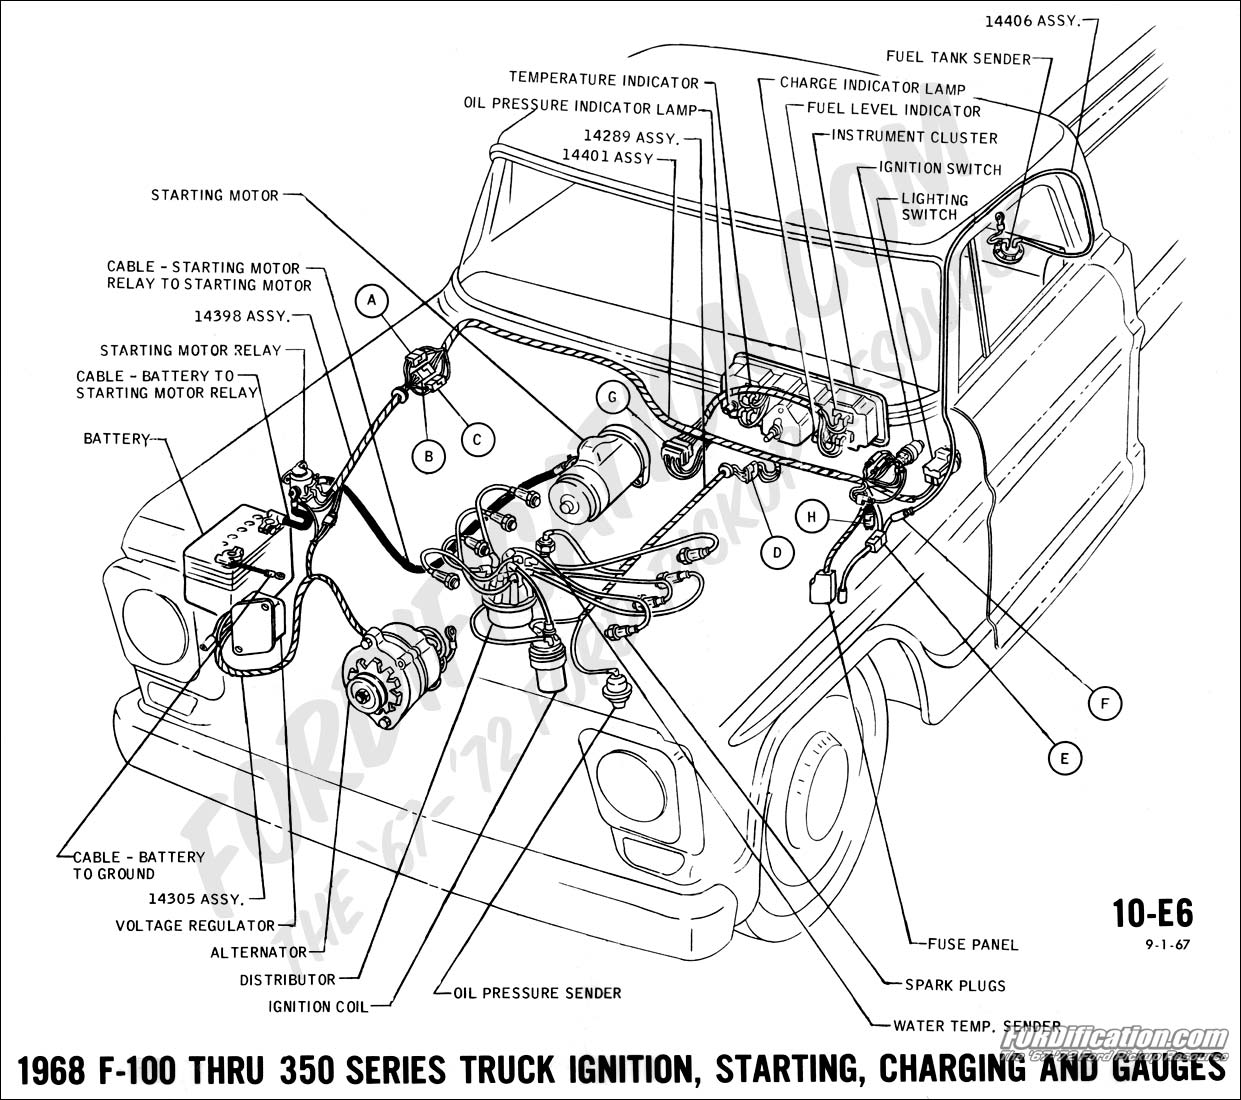 Ford Truck Technical Drawings And Schematics Section H Wiring 86 Mustang Harness 1968 F 100 Thru 350 Ignition Starting Charging Gauges